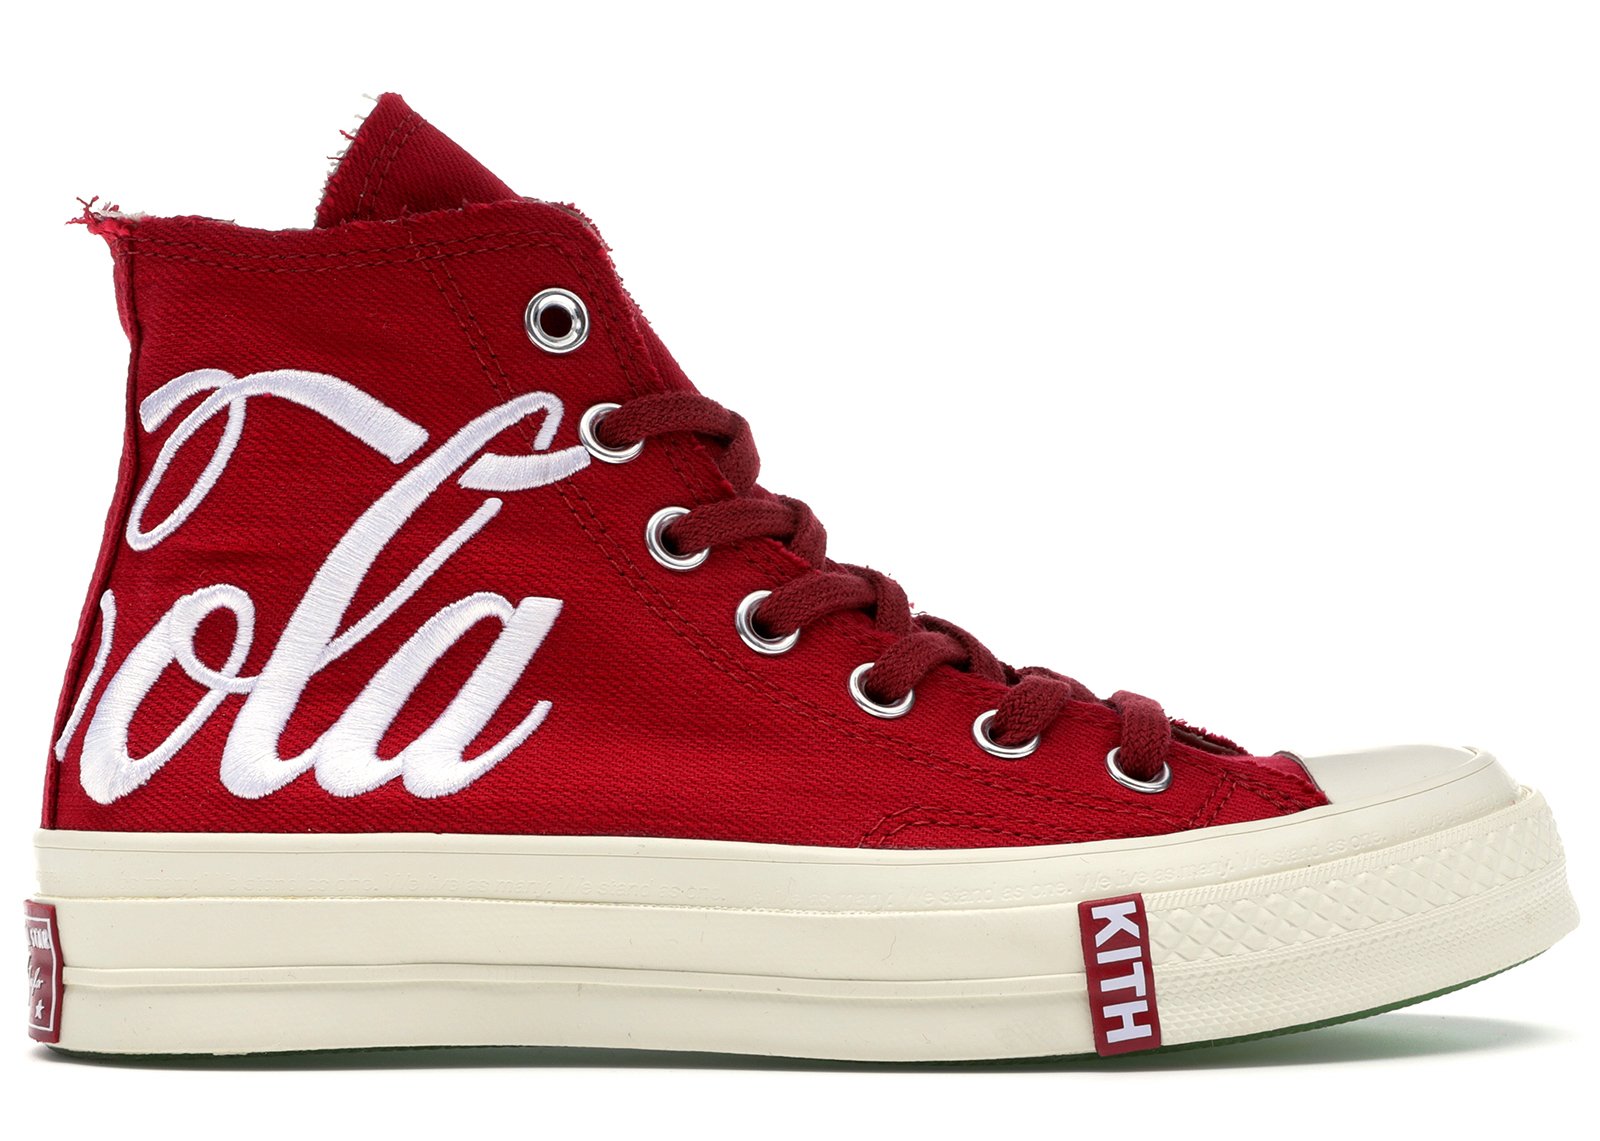 Converse Chuck Taylor All Star 70s Hi Kith x Coca Cola Red